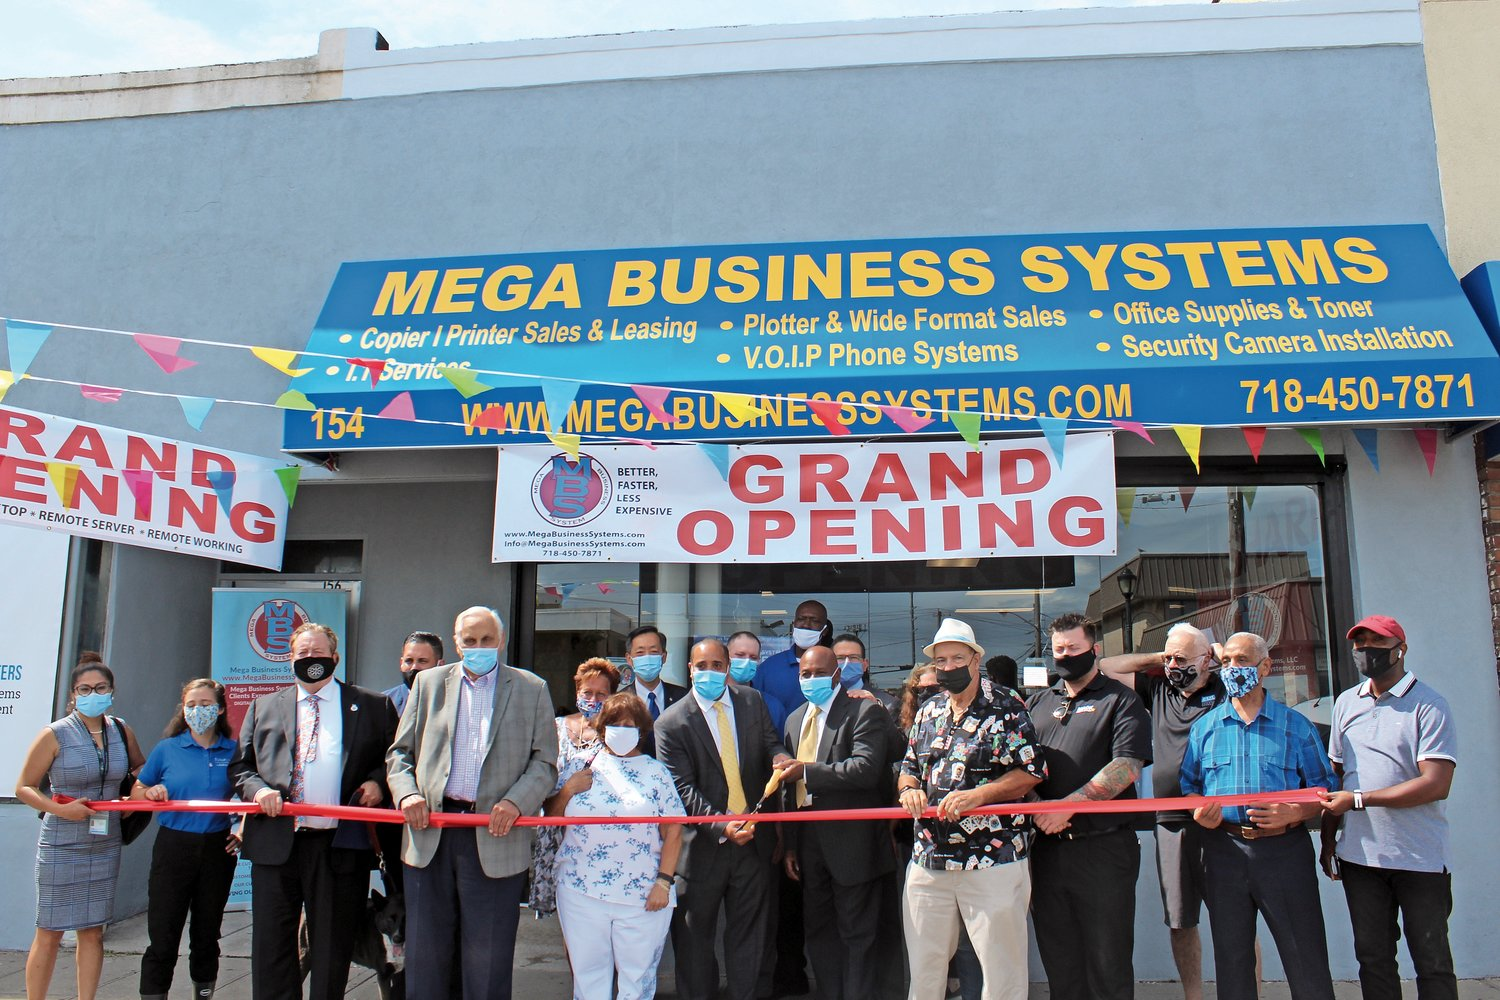 Members of the Island Park Chamber of Commerce, as well as local elected officials, joined Mega Business Systems for its grand opening on Long Beach Road in Island Park.